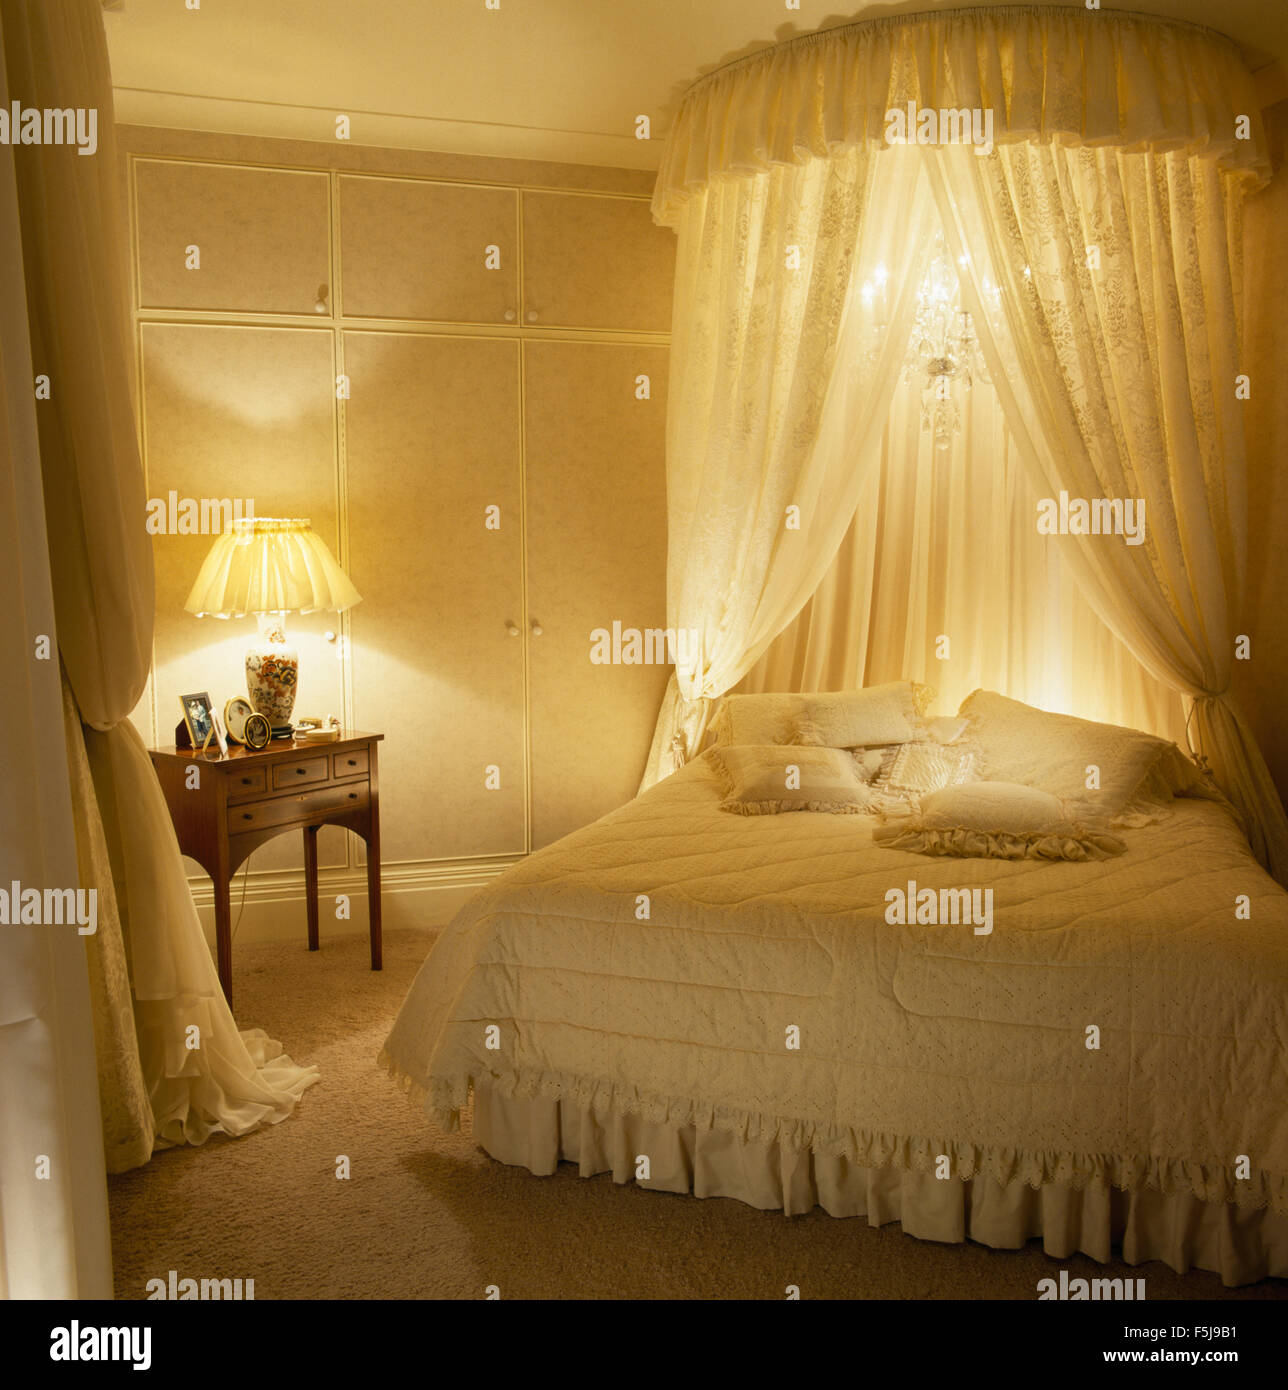 Coronet With Lace Curtains And Small Chandelier Above Bed